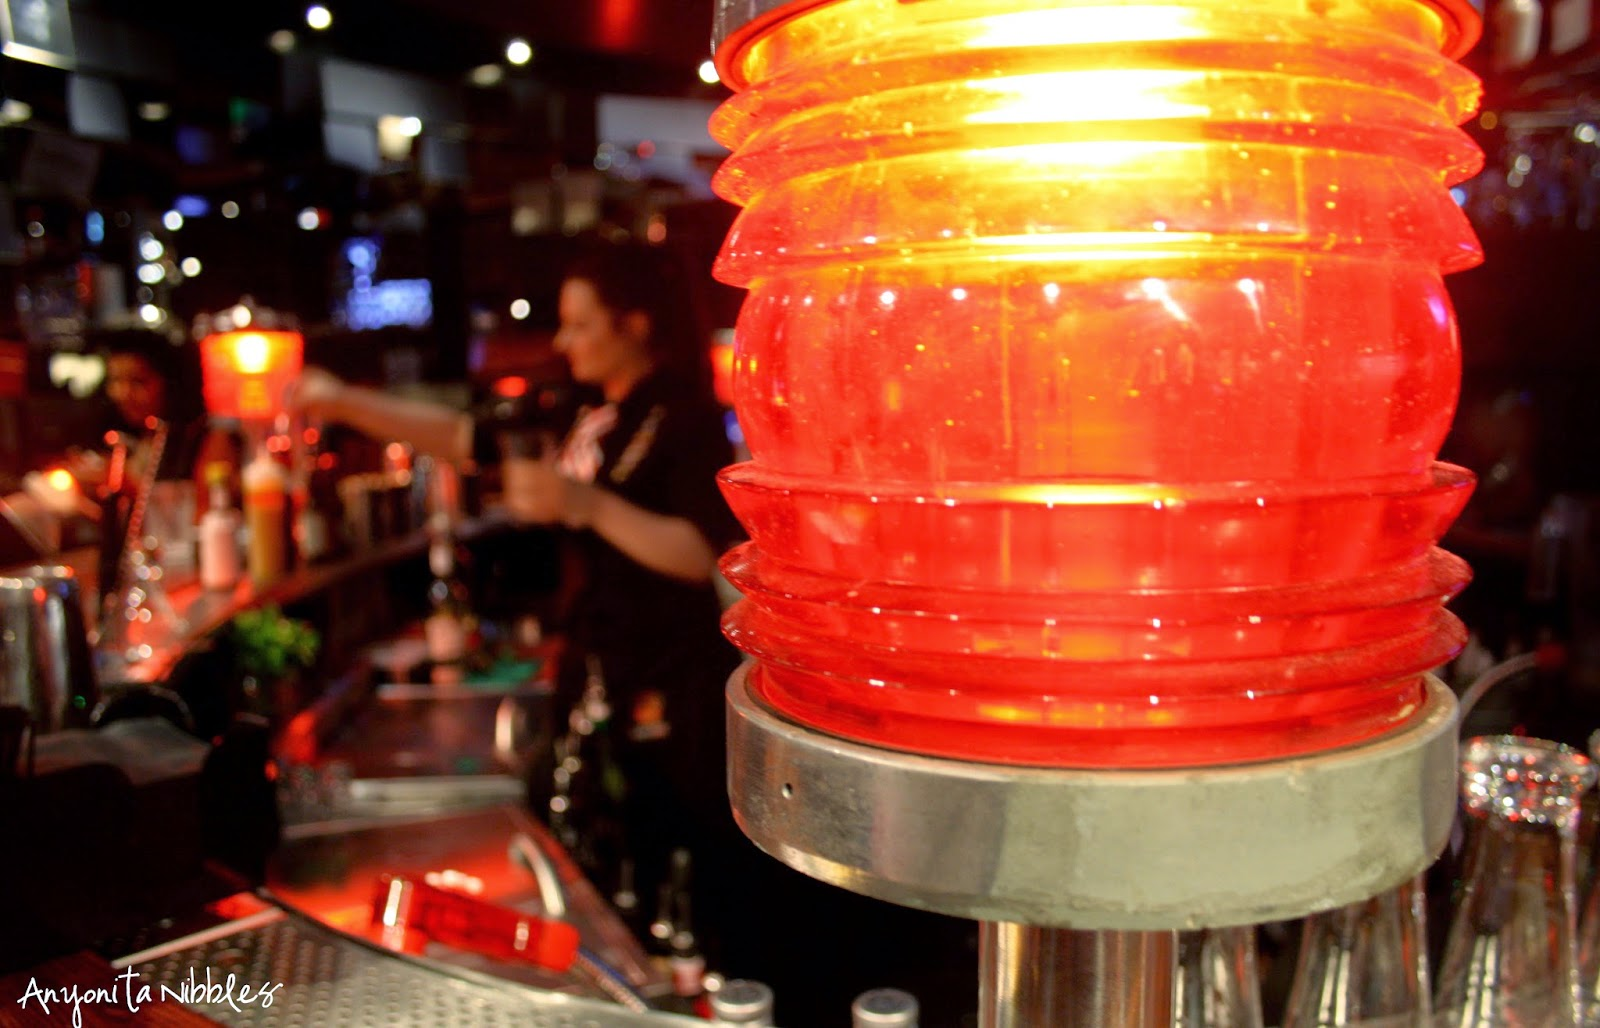 Round the bar at TGI Friday's